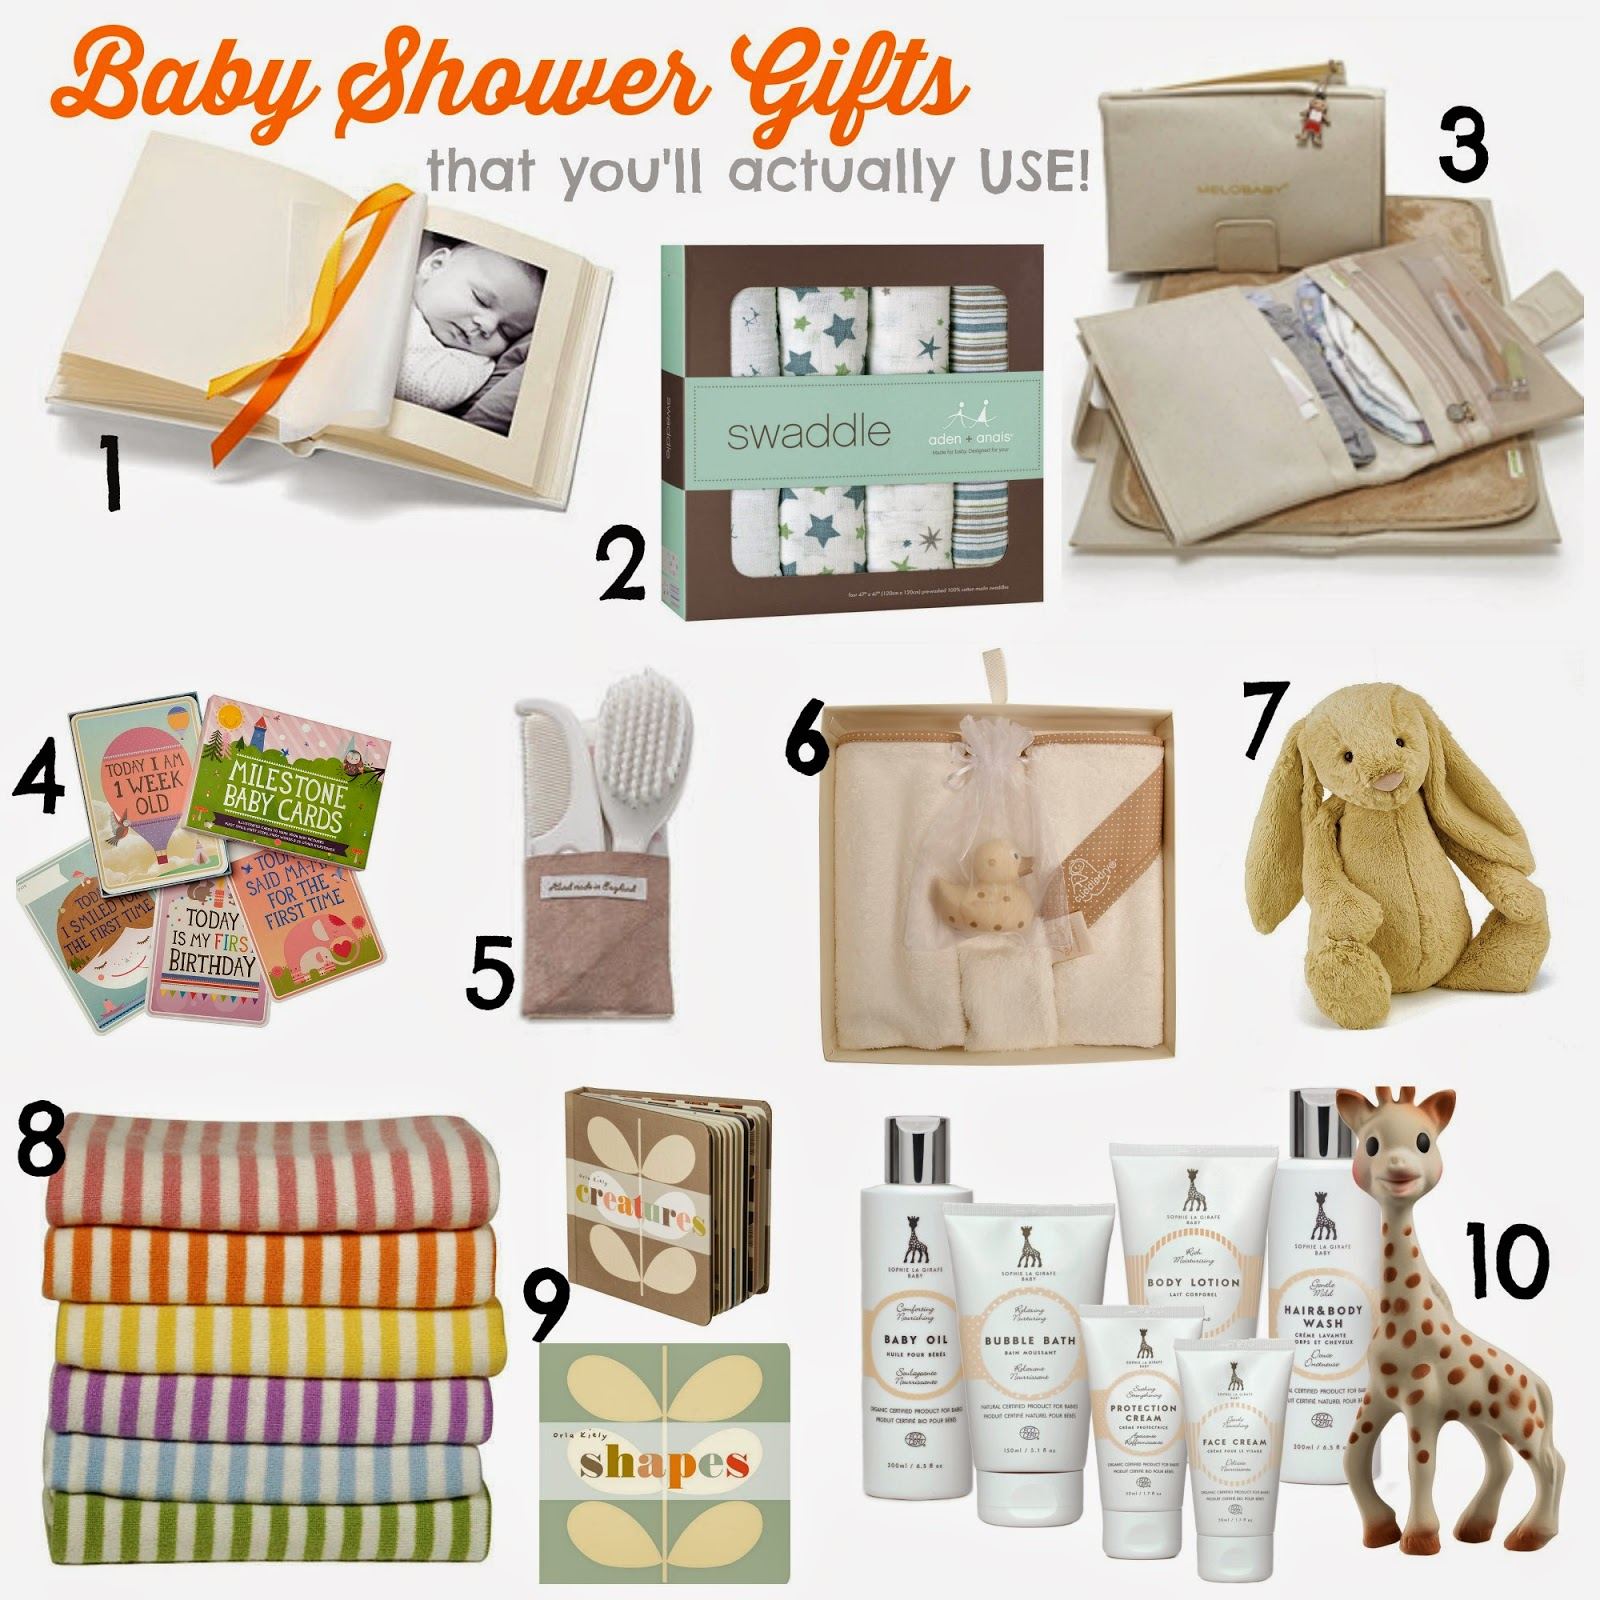 Beautiful 10 Luxe Baby Shower Gifts That New Mums Will Love - And Use | V. I. with Luxury Useful Baby Shower Gifts